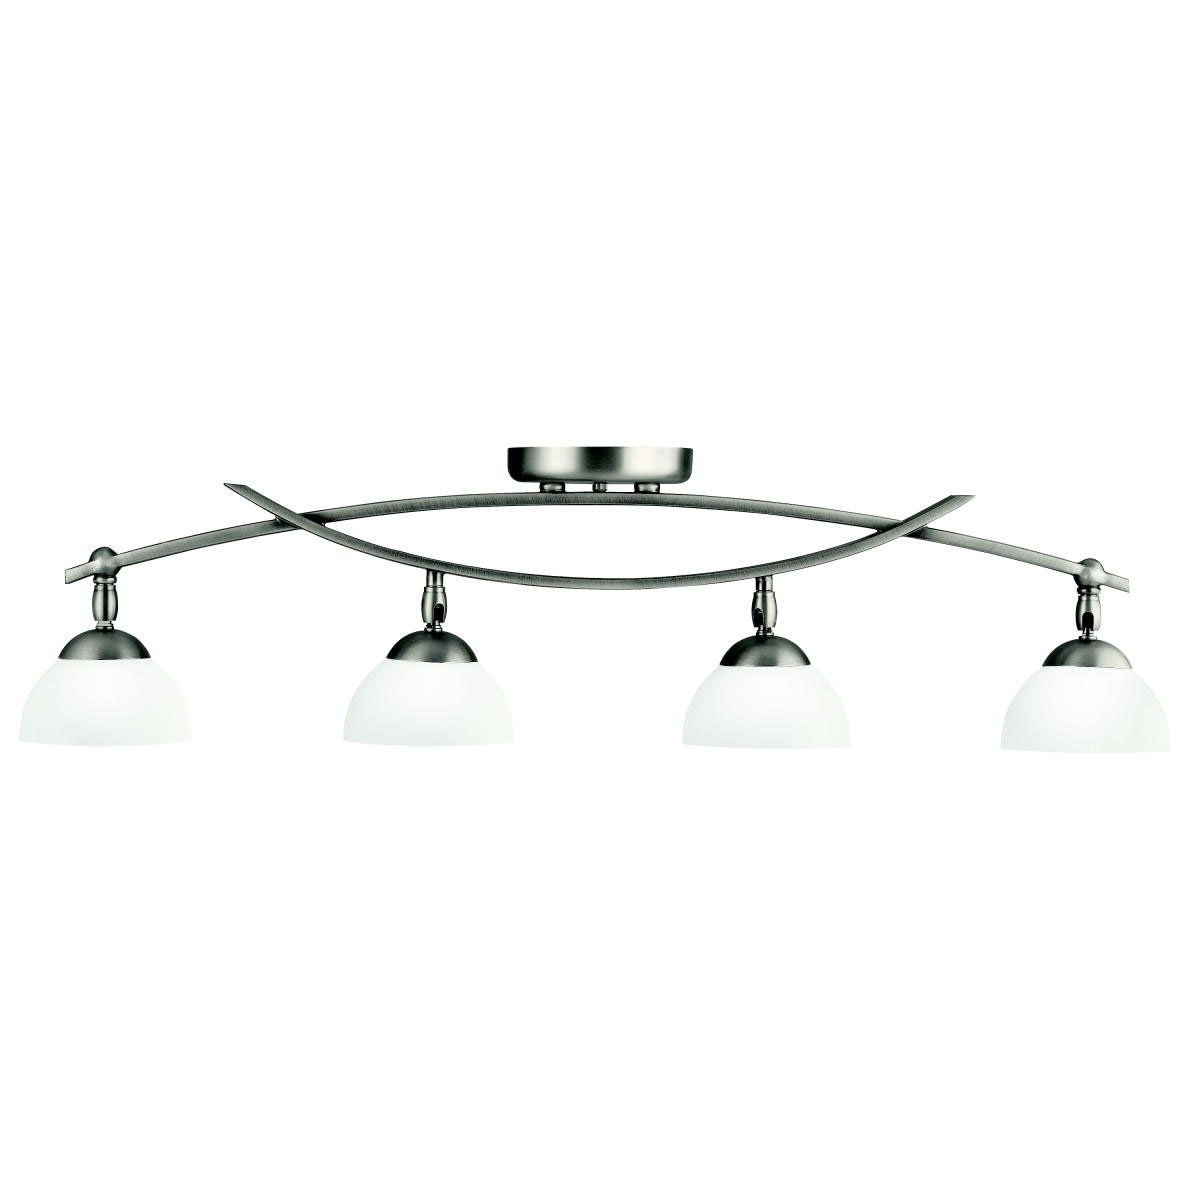 Kichler 42164ap bellamy 4 light rail light in antique pewter kichler 42164ap bellamy 4 light rail light in antique pewter vanity lighting fixtures amazon arubaitofo Image collections